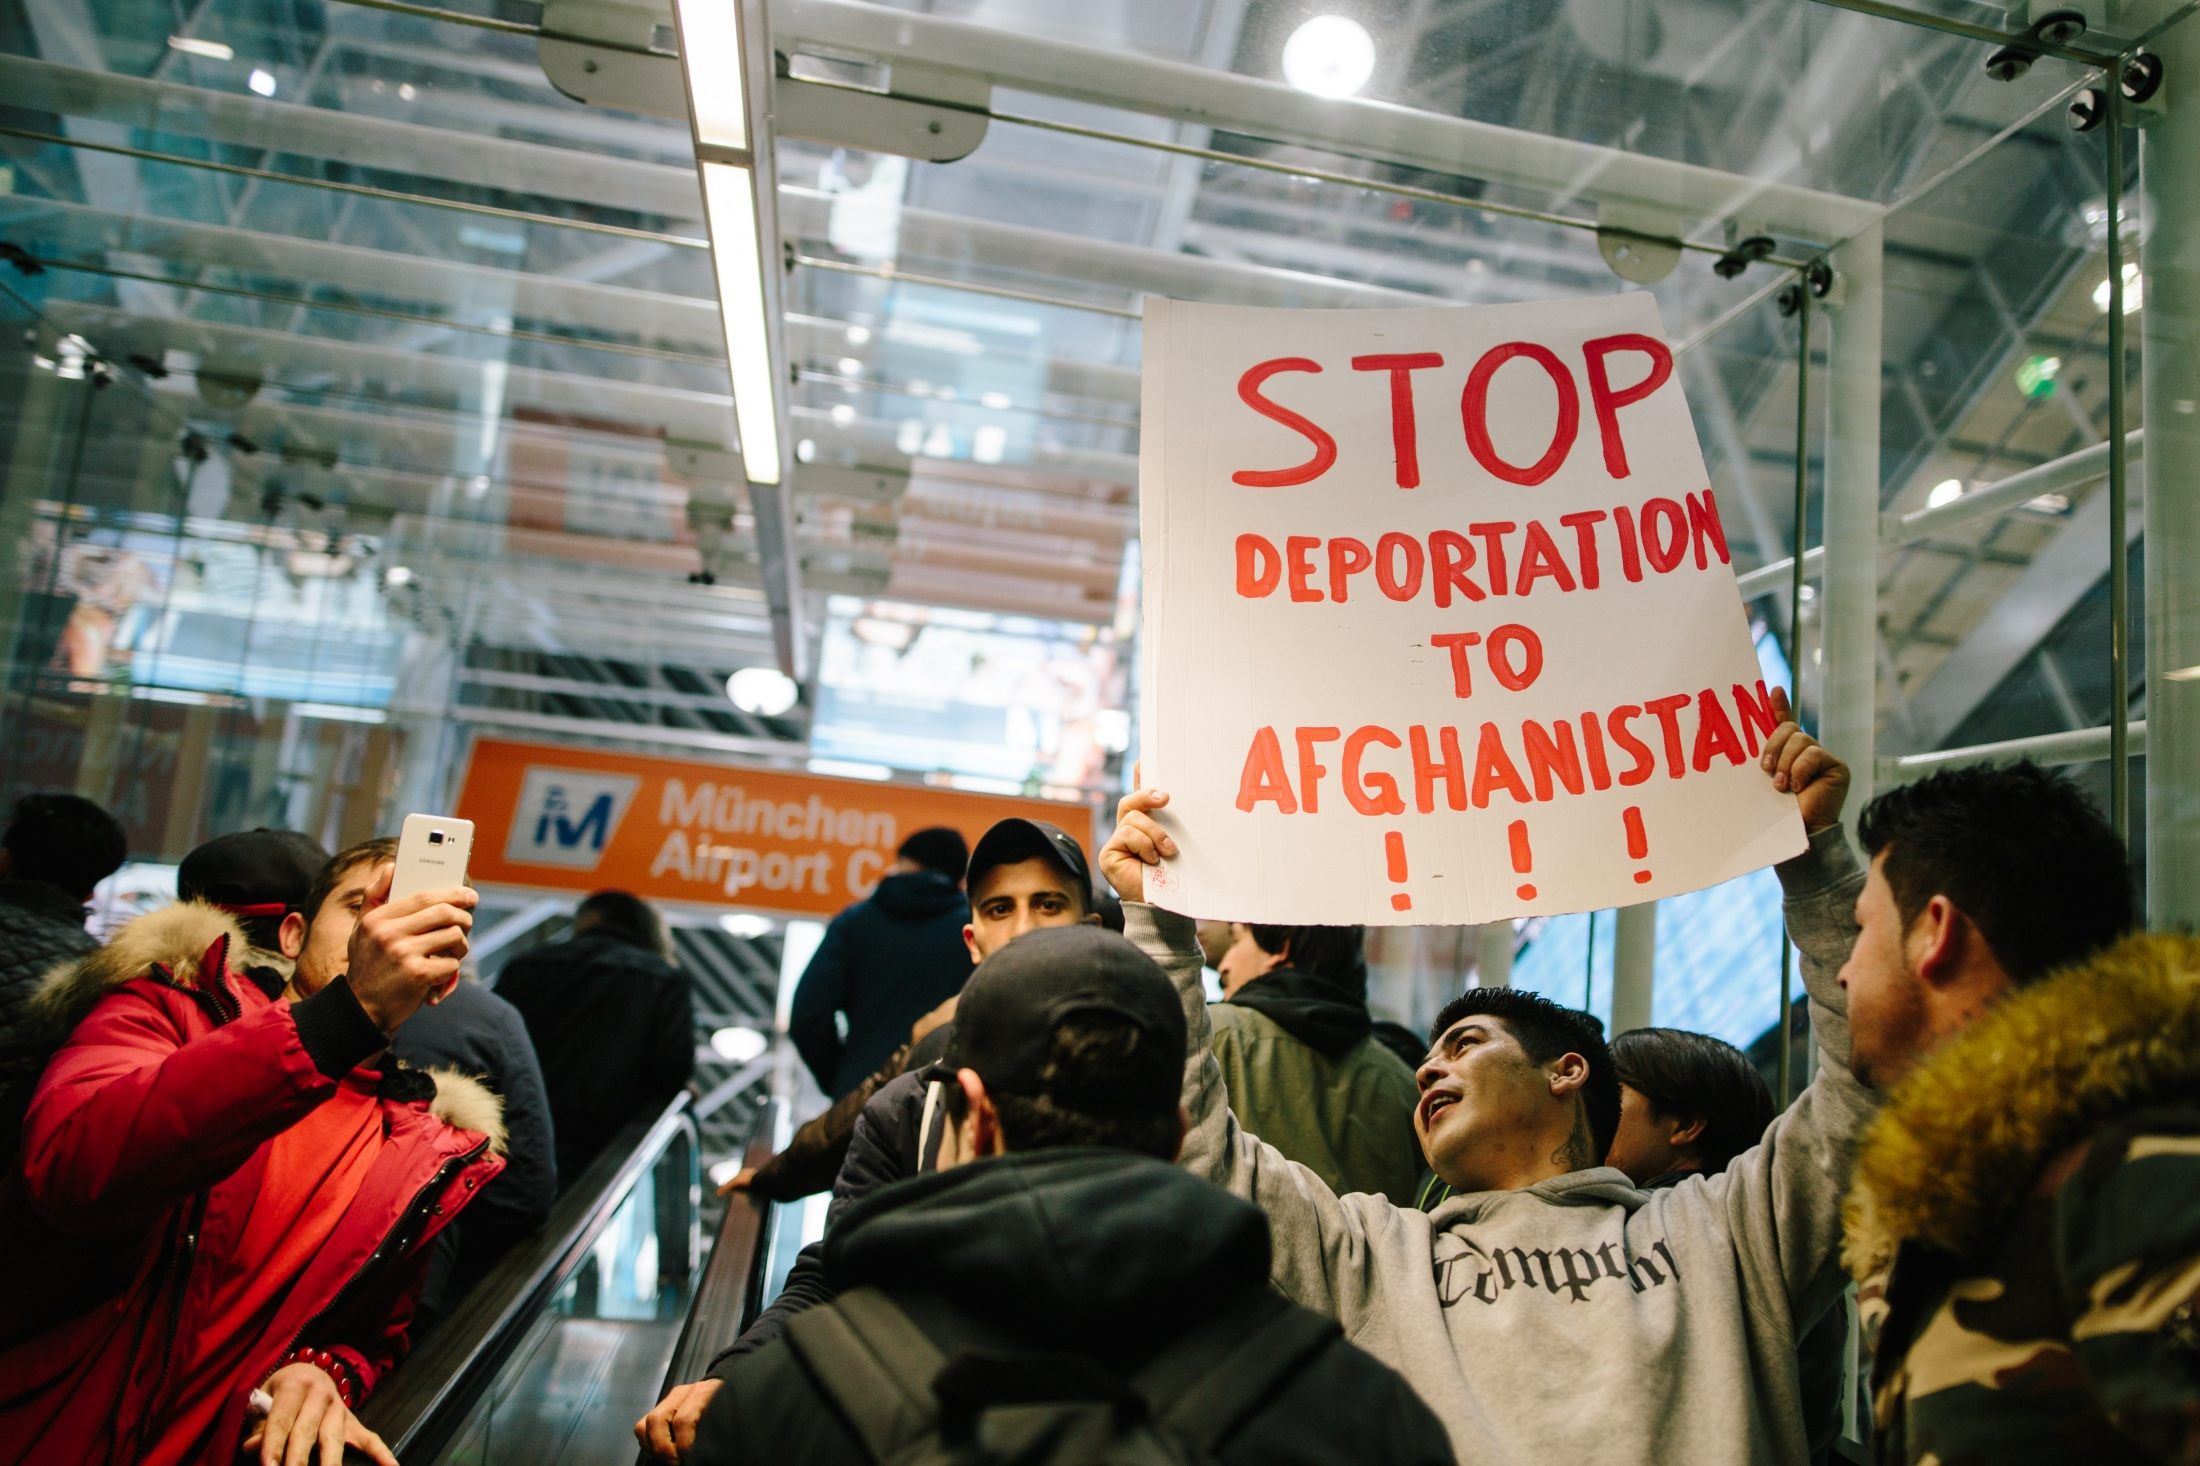 A young man carries a sign calling for a stop of deportations to Afghanistan at a protest at Munich airport. February 22nd, 2017